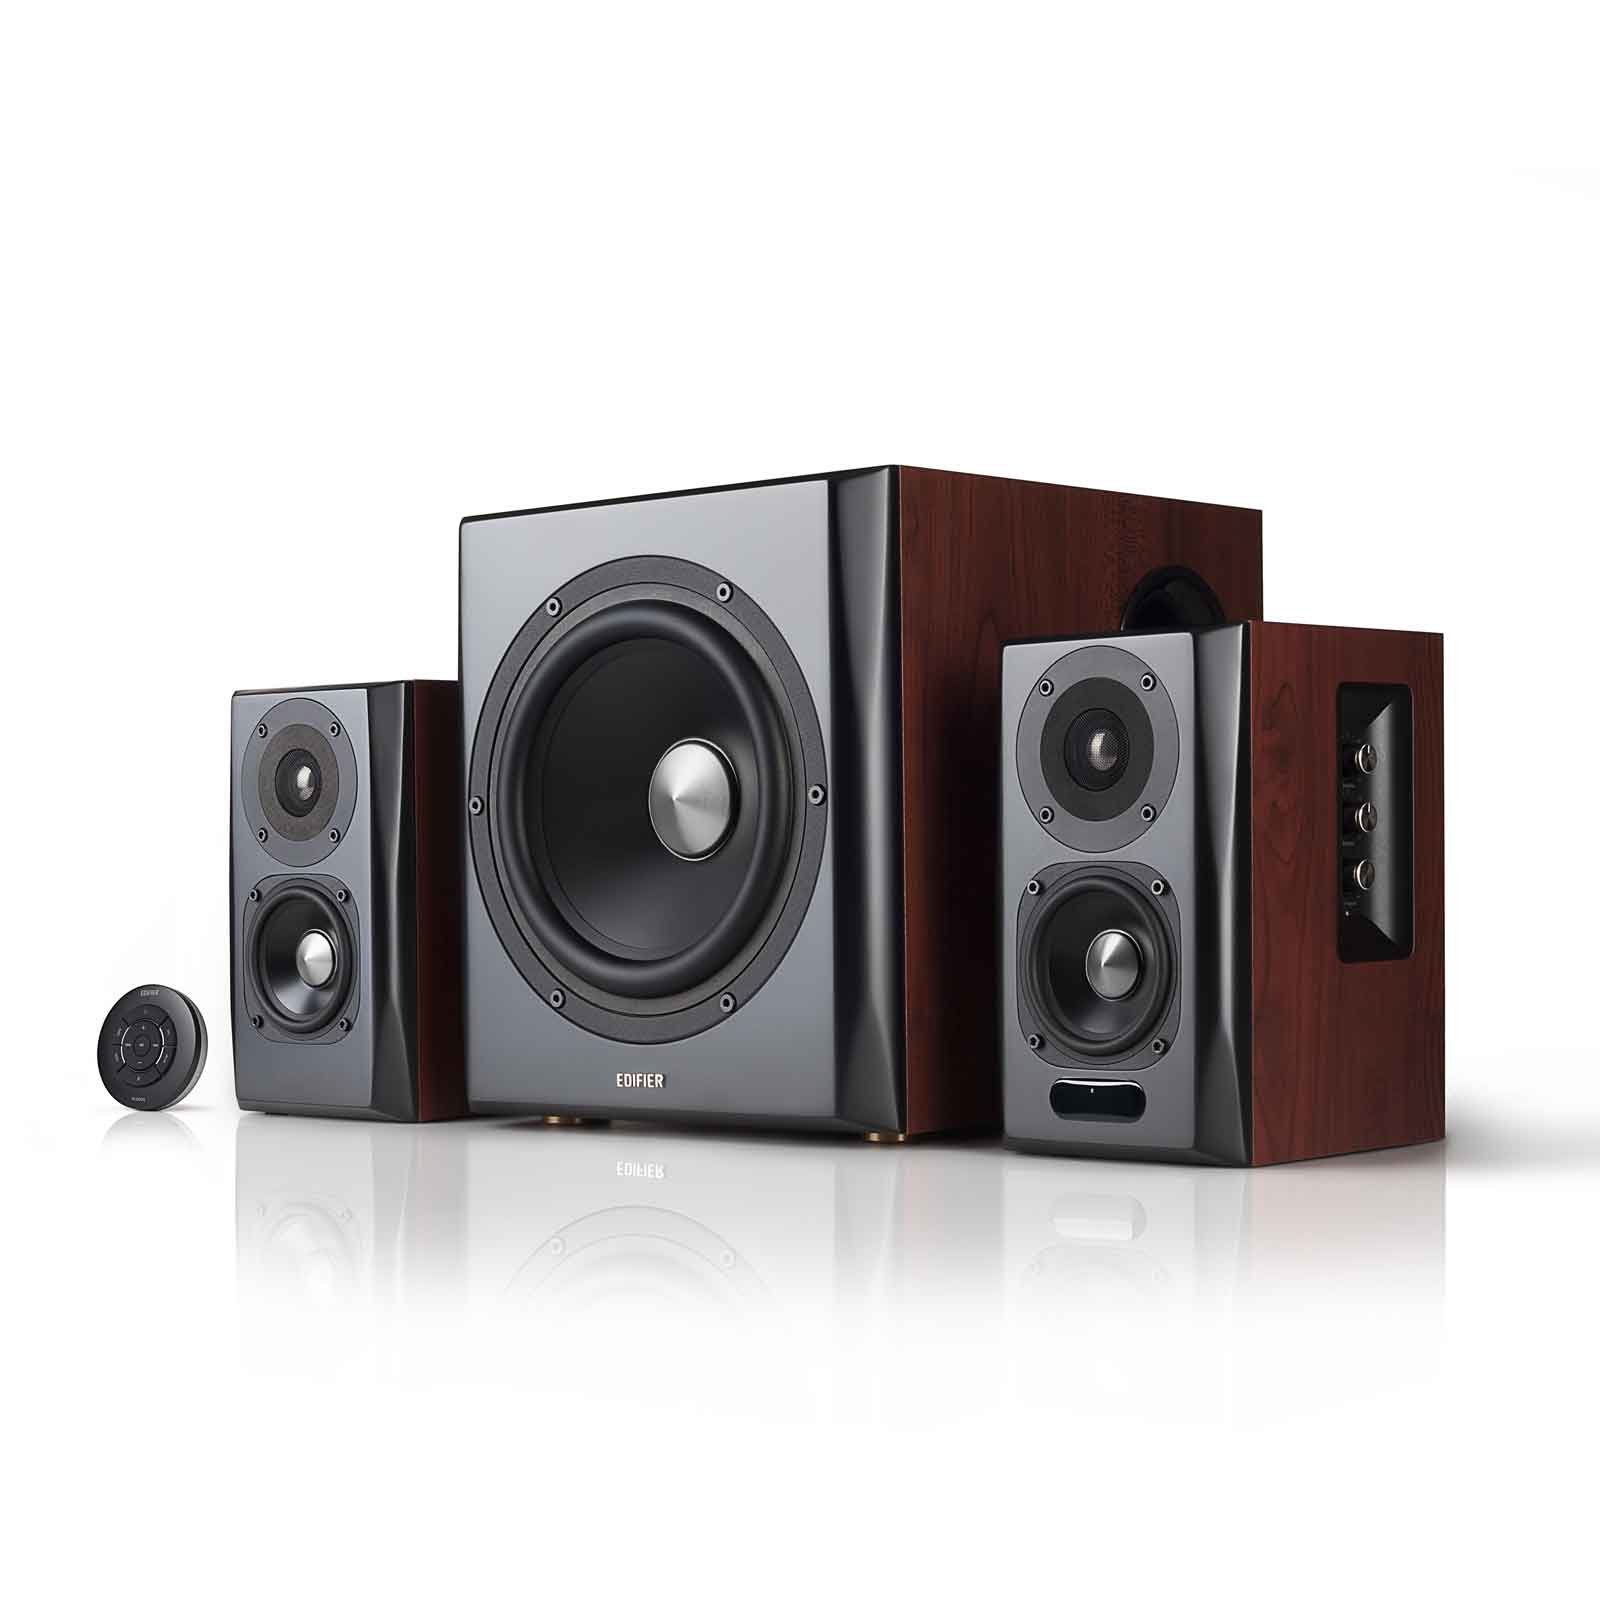 Edifier S350DB Bookshelf Speaker and Subwoofer 2.1 Speaker System Bluetooth v4.1 aptX Wireless Sound For Computer Rooms, Living Rooms and Dens by Edifier